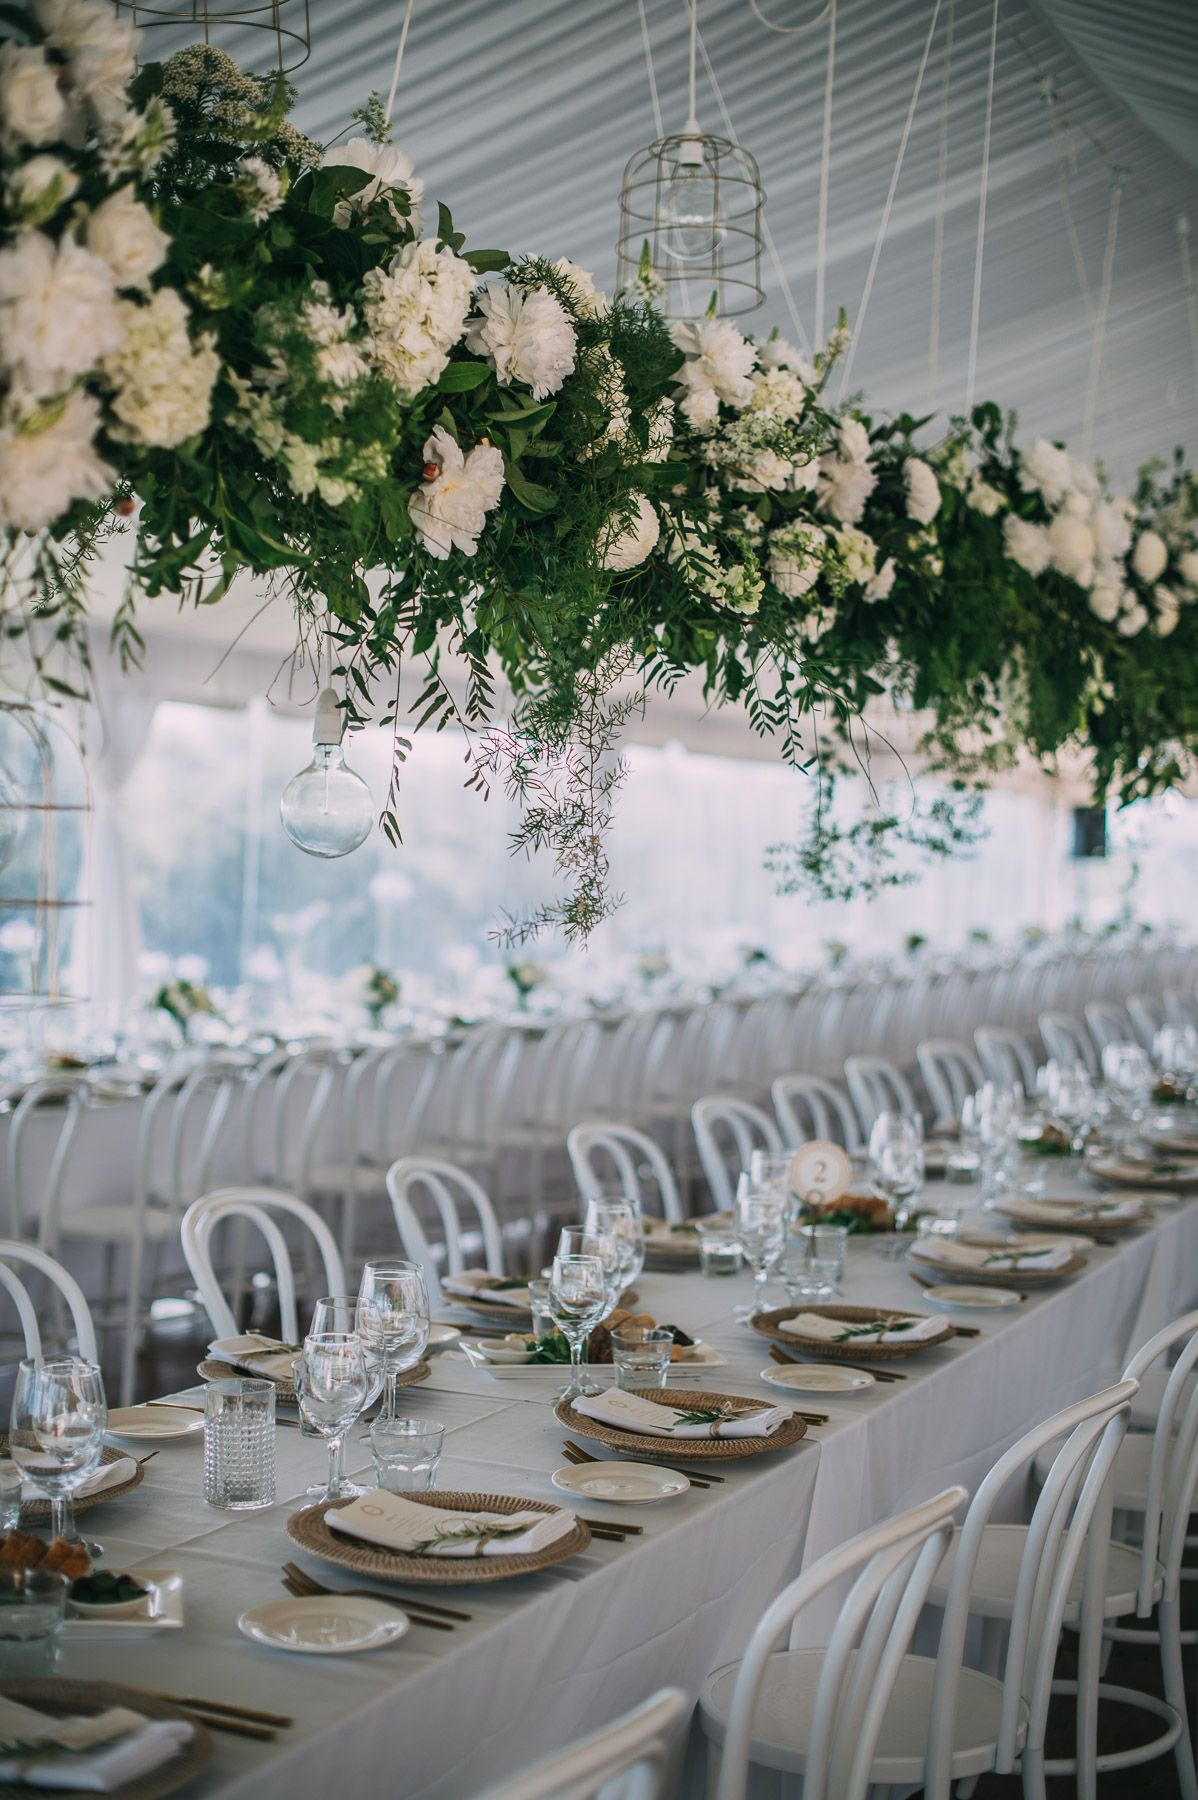 Wedding Reception White Bentwood Chairs Hanging Florals